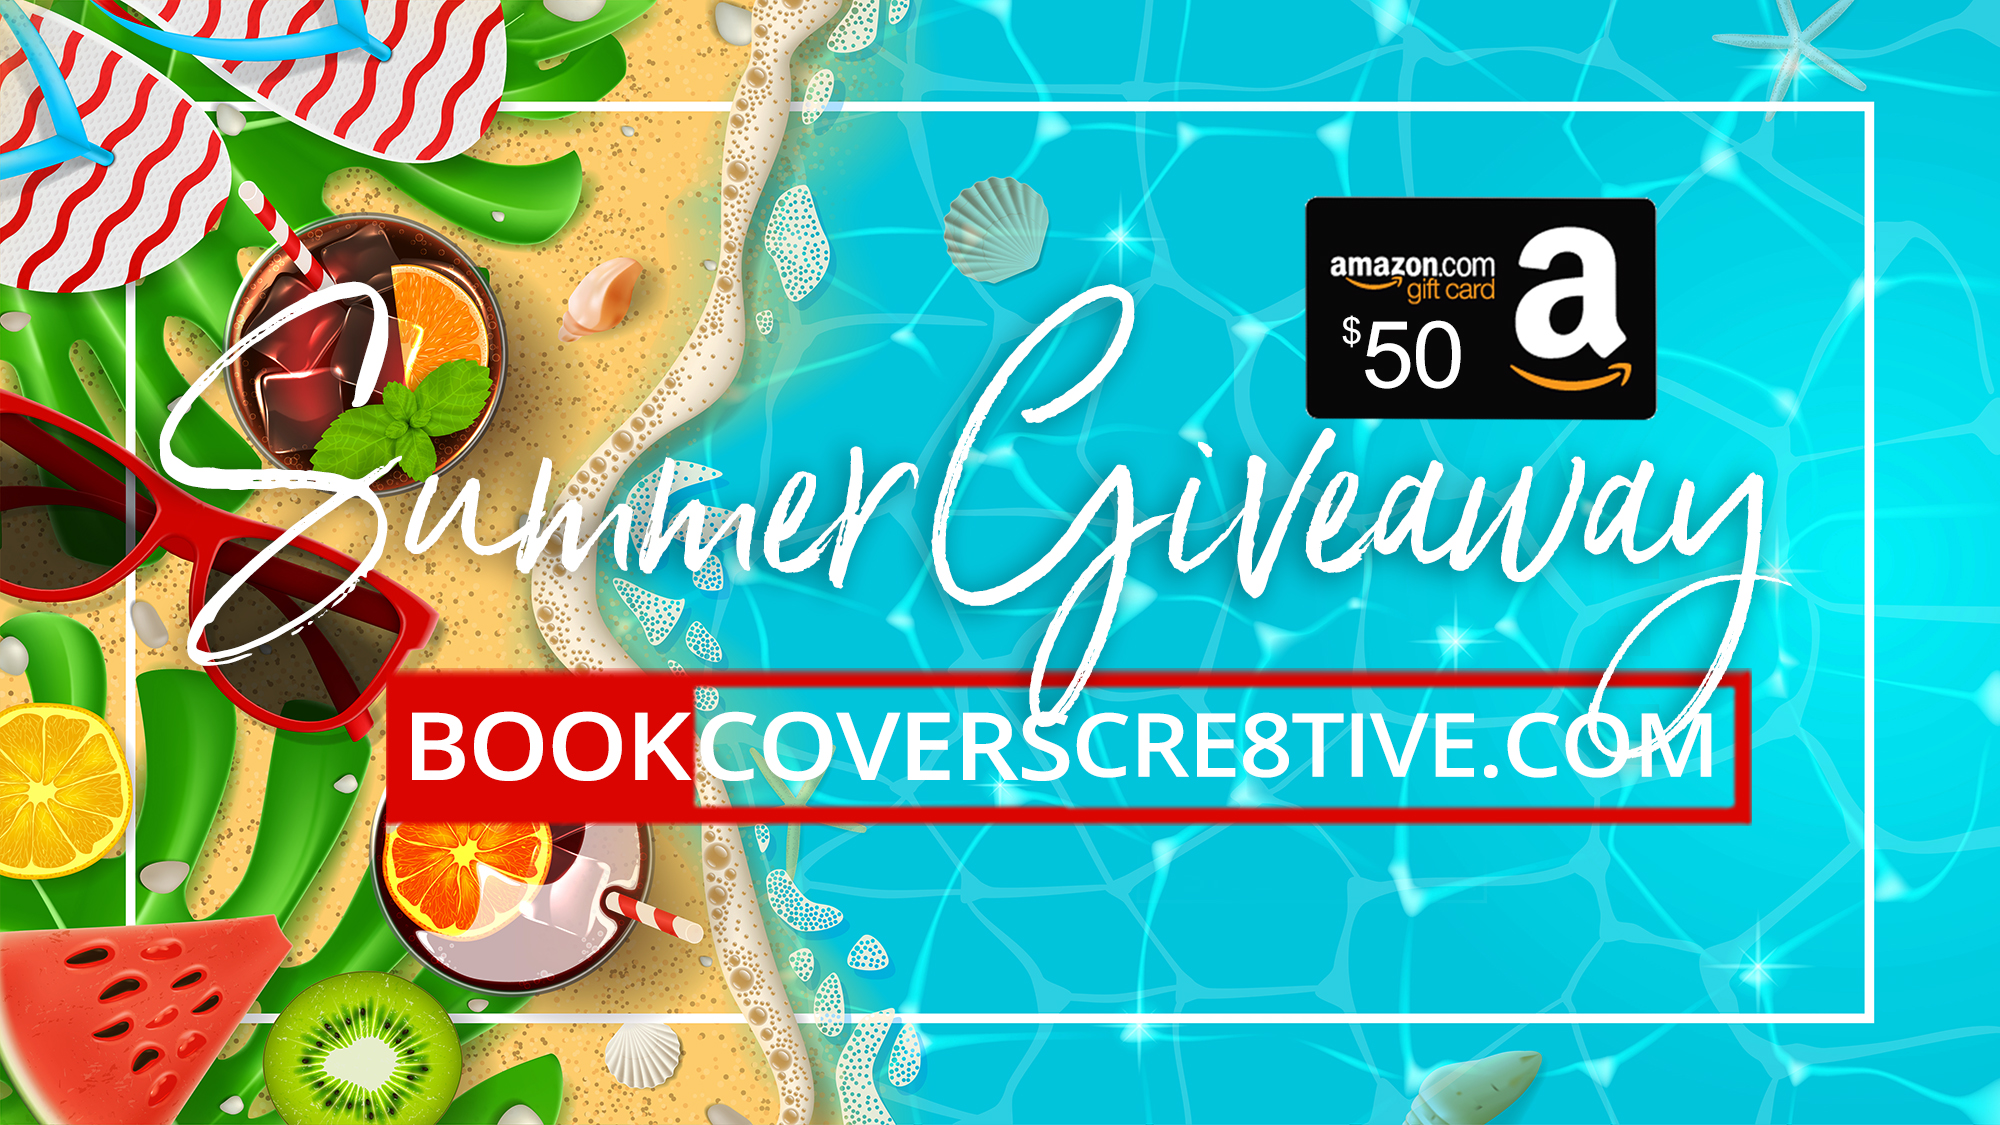 Bookcoverscre8tive Summer 2018 Giveaway | Bookcoverscre8tive